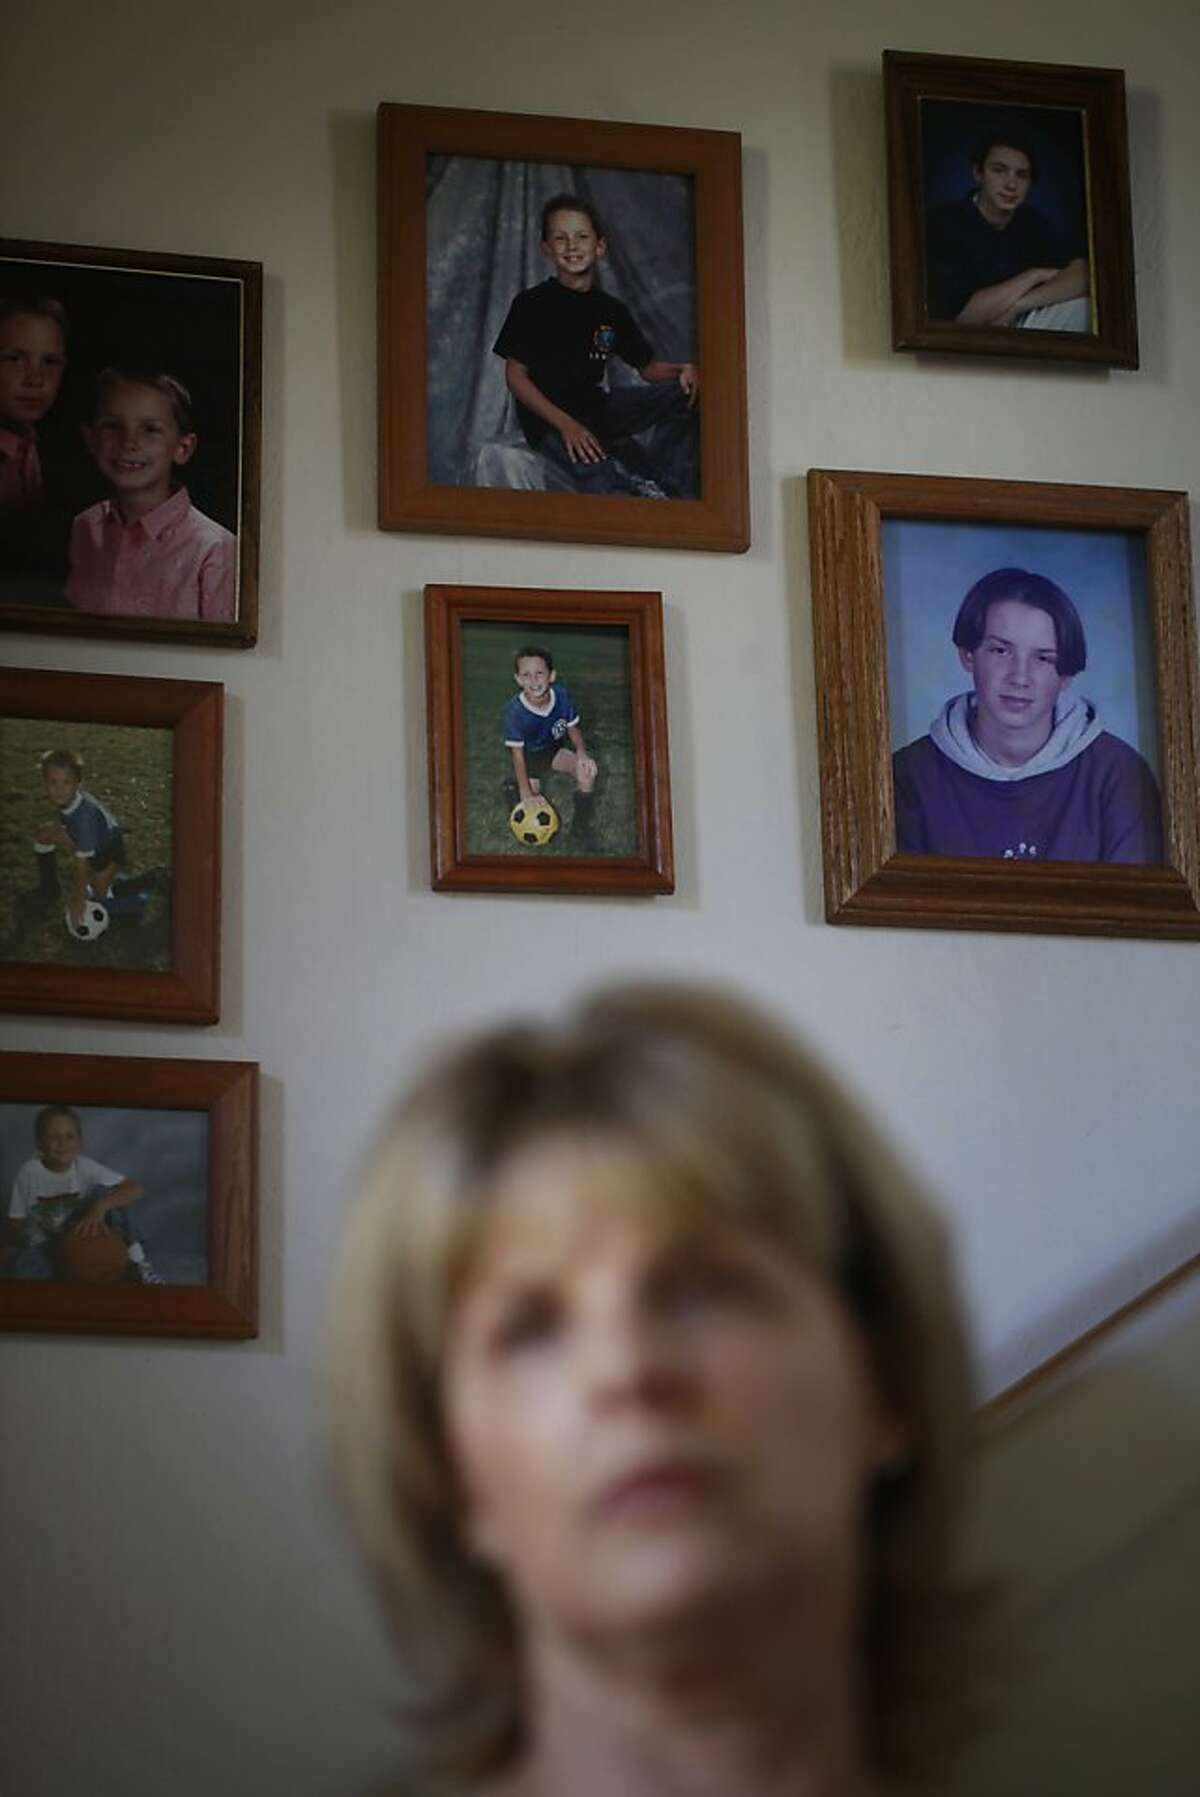 Standing in front of wall of photographs that predate her son's illness, Laura's Law supporter,Teresa Pasquini, whose 29-year-old son is at Napa State for treatment of schizophrenia, tells her store on July 10, 2012 in El Sobrante, Calif. She said dealing with her son's mental illness has taken all of her energy but she refuses to give up on him.